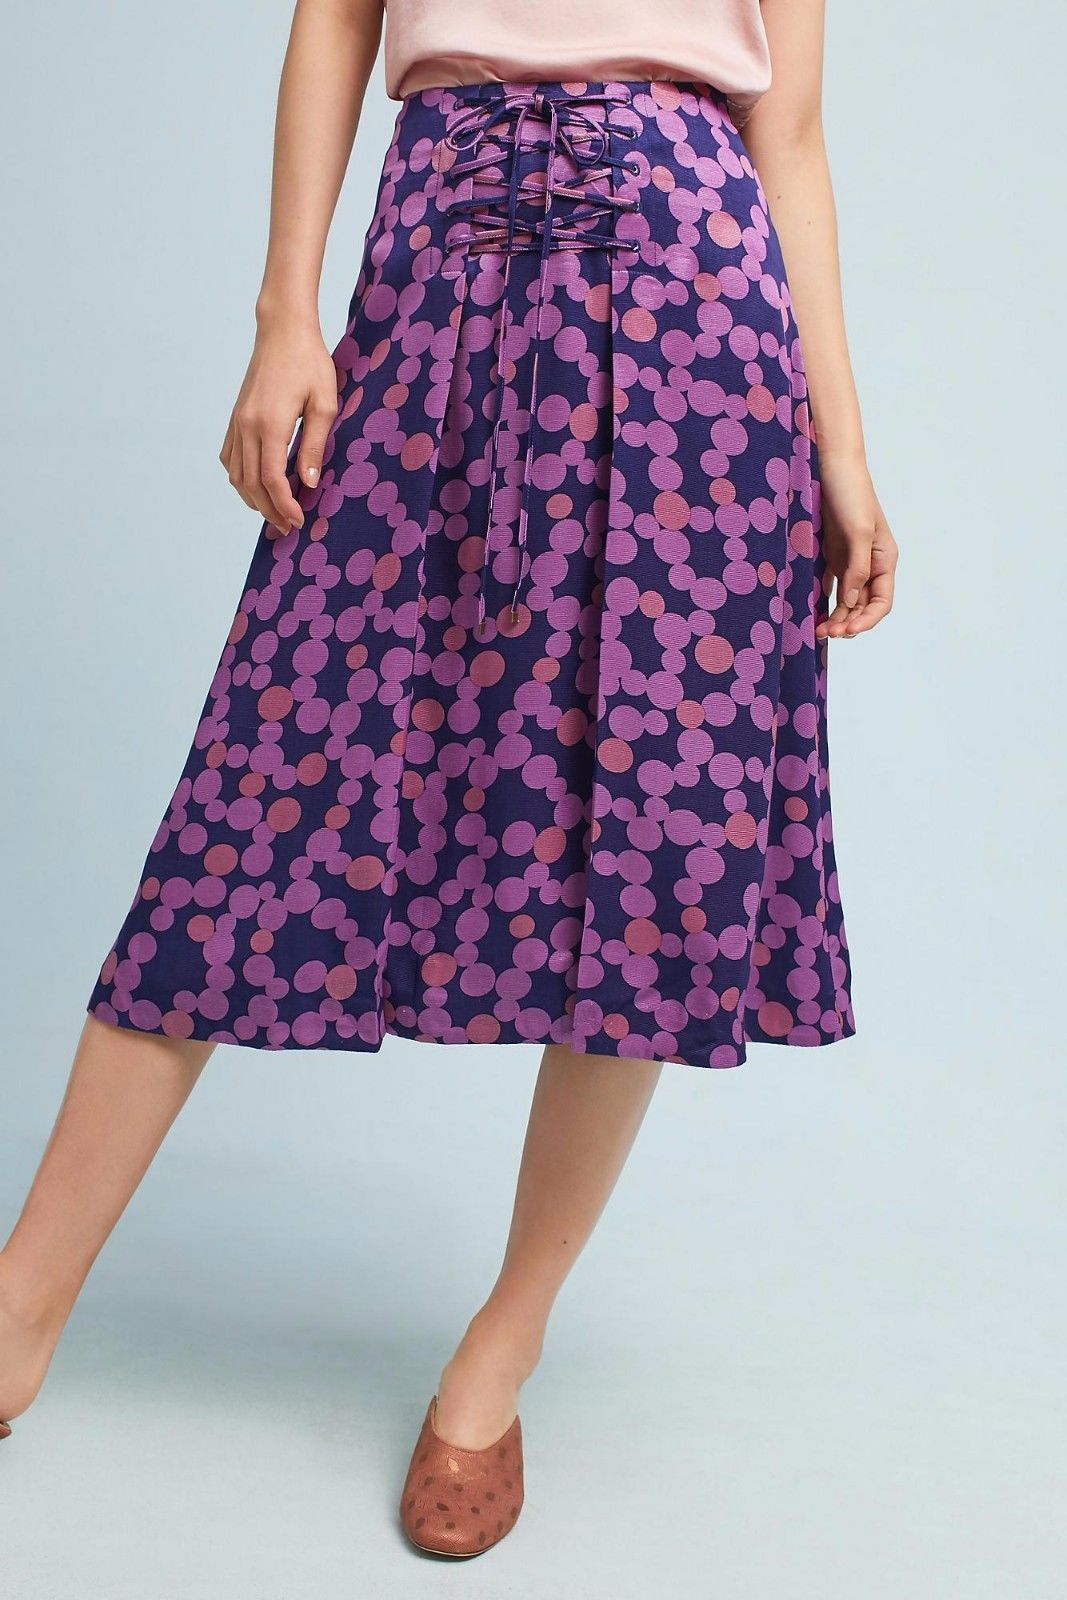 Primary image for NWT ANTHROPOLOGIE ZADIE LACE-UP PLUM PRINT MIDI SKIRT by MAEVE 8